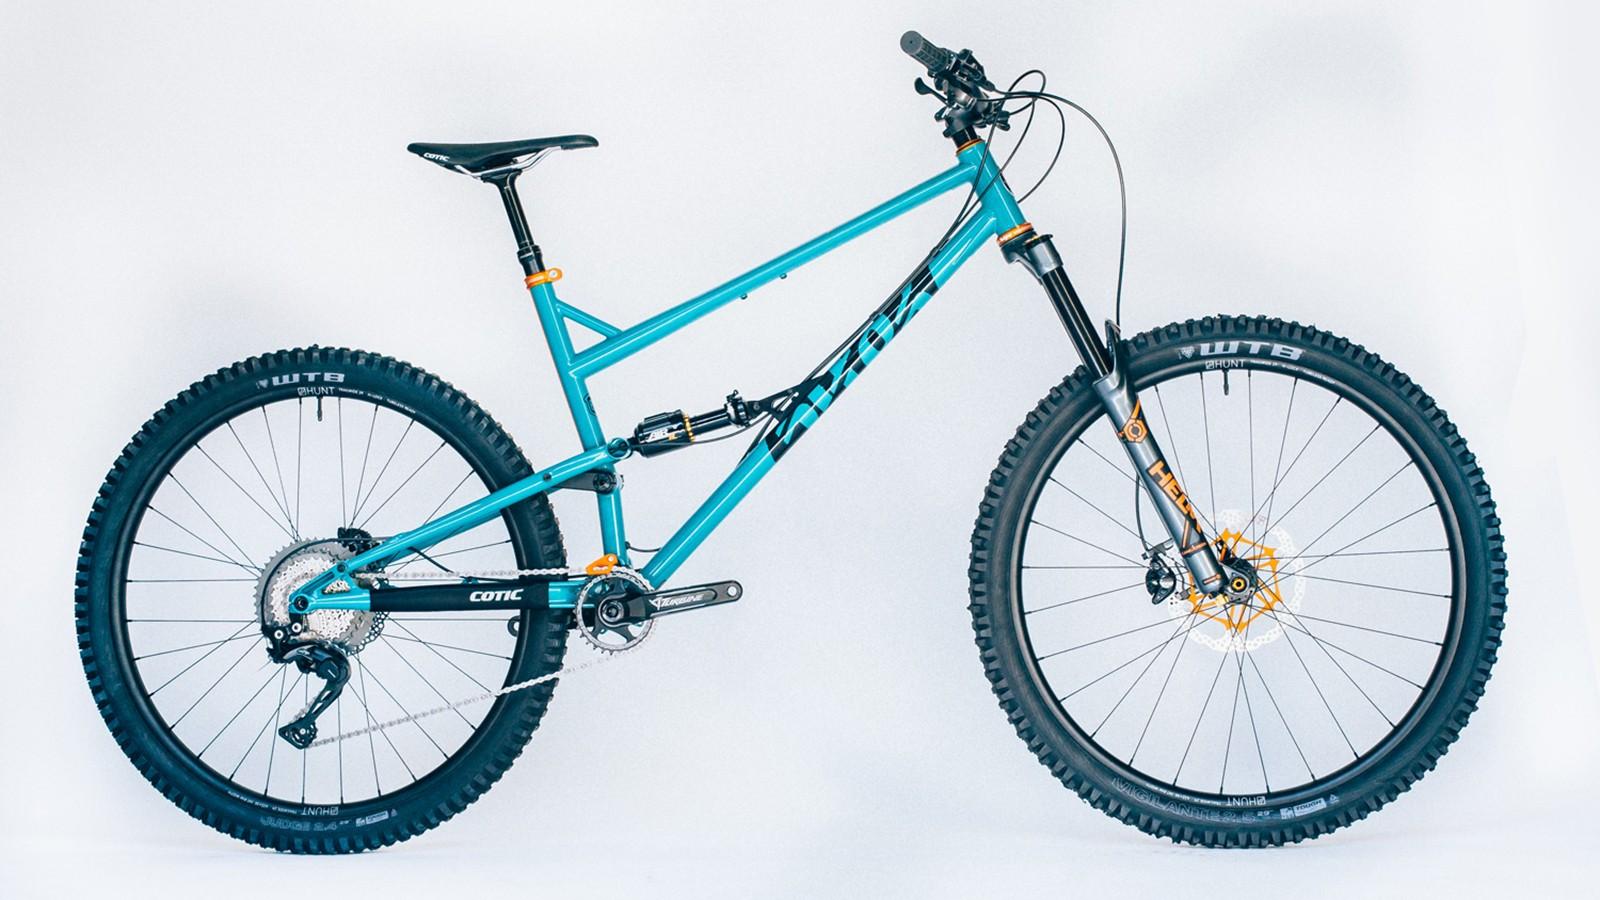 The RocketMAX in a fetching Teal and Tangerine